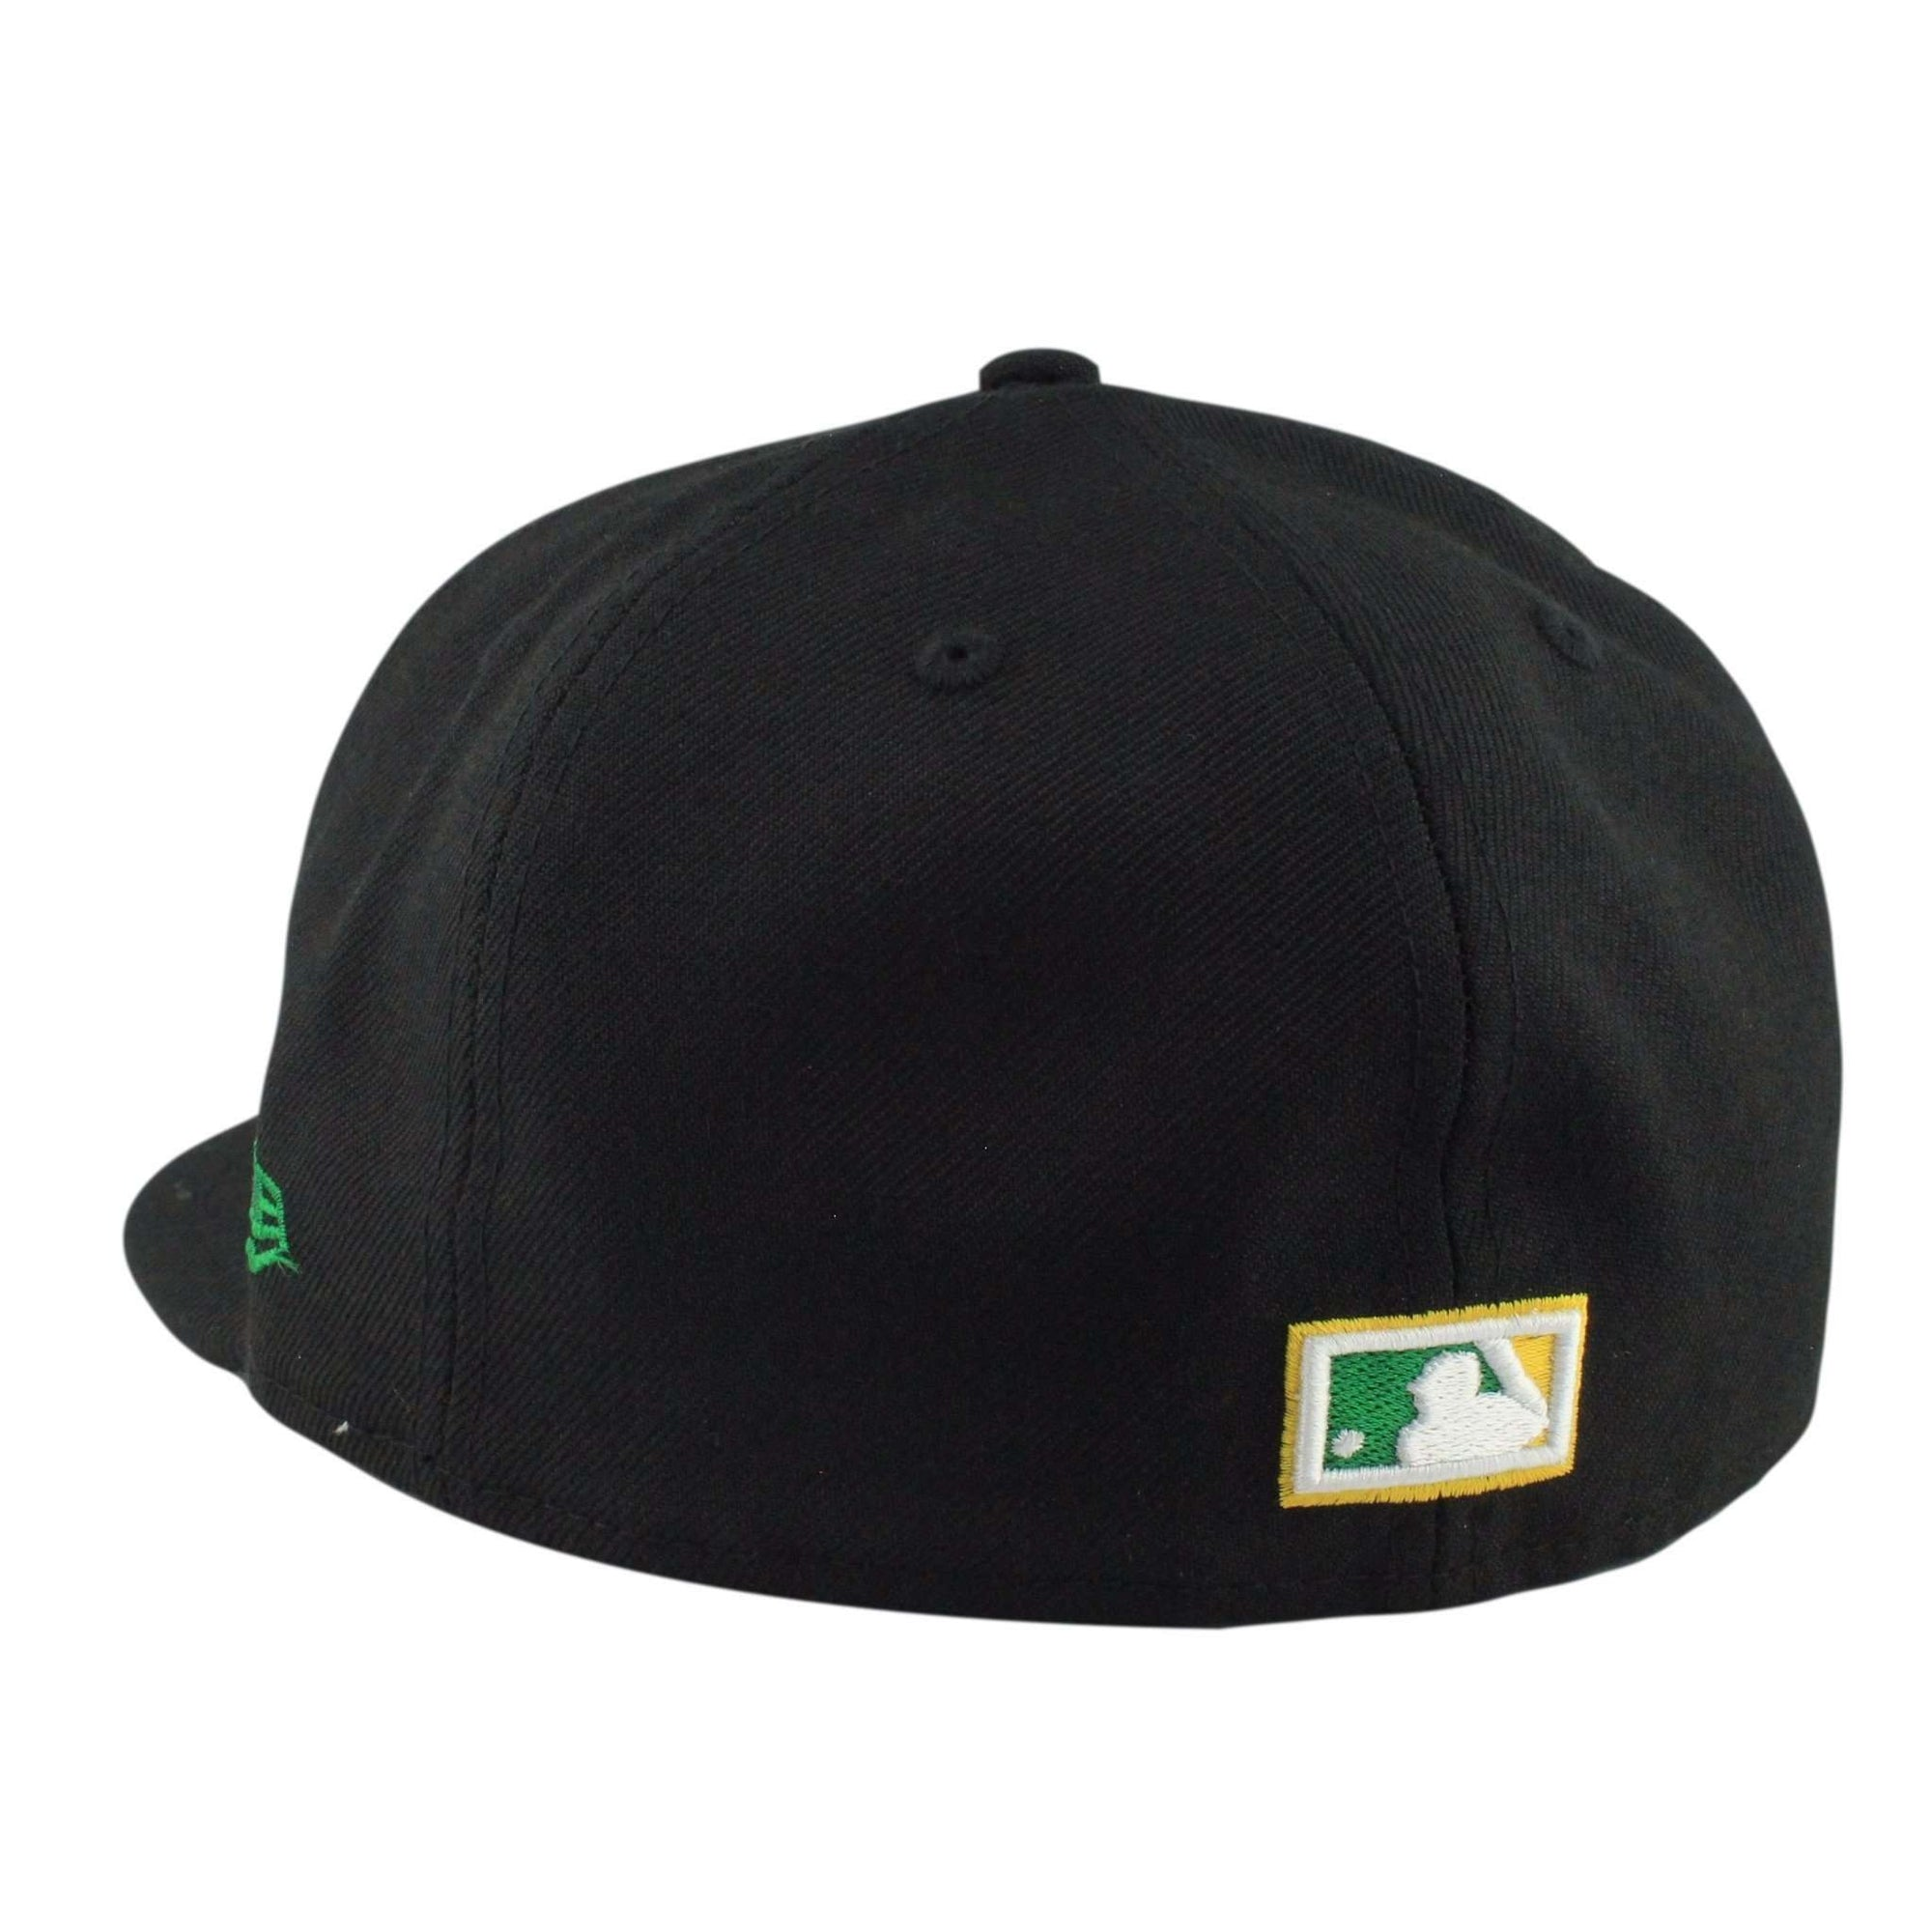 593d9a7b Oakland A's Elephant Cooperstown Black/Black Fitted | New Era ...